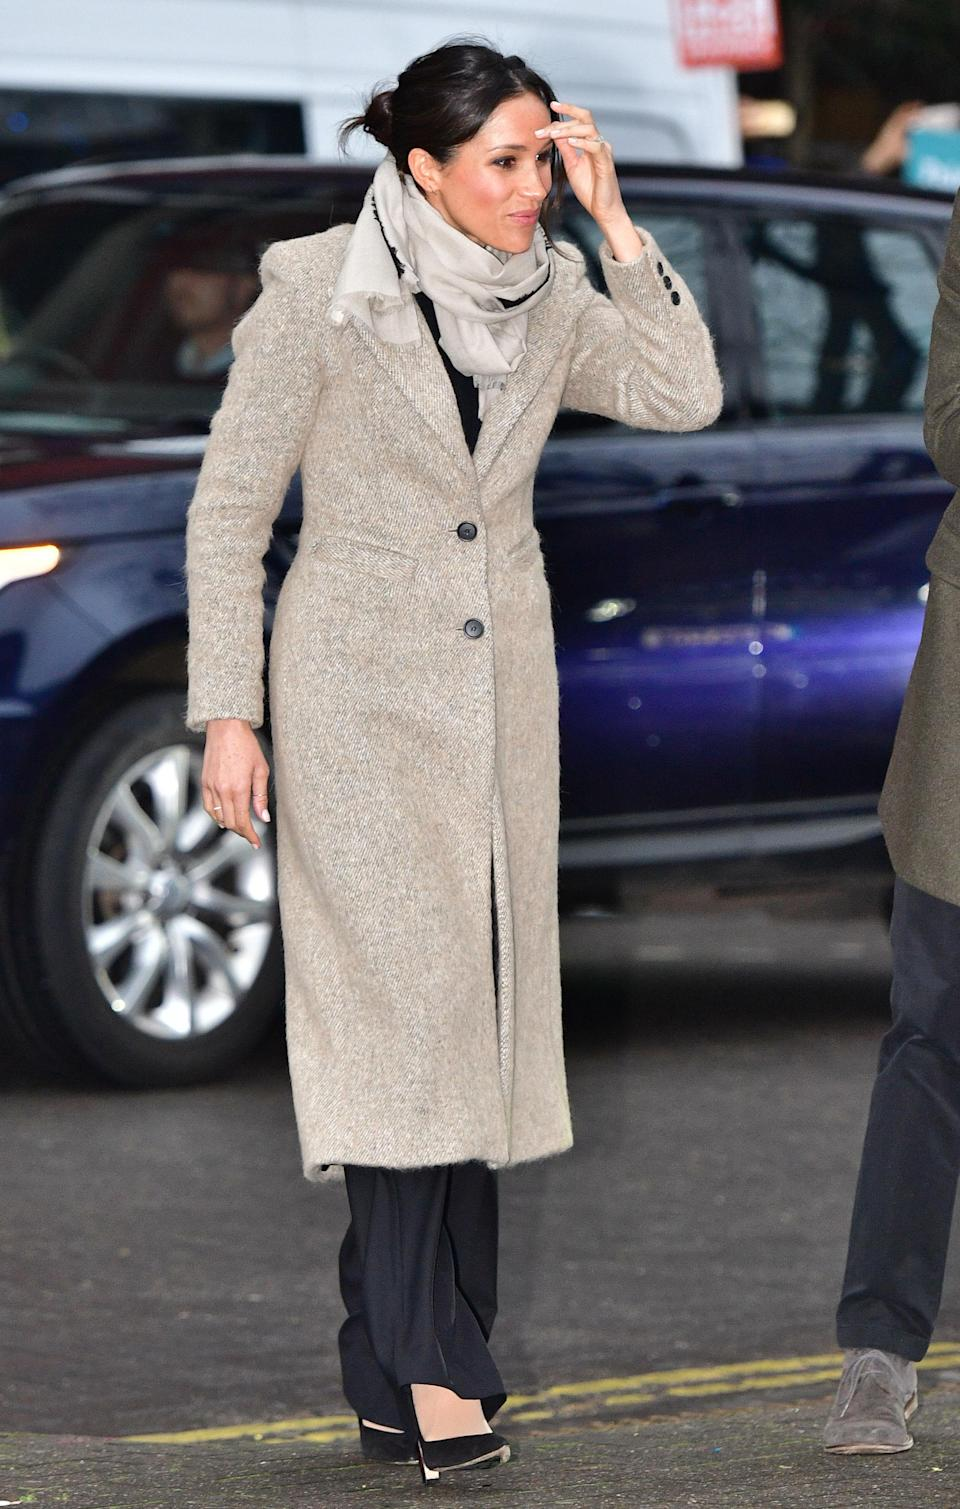 """<p>On 9 January 2018, Meghan Markle and Prince Harry visited a Brixton radio station to mark their second royal engagement together. For the momentous occasion, Markle recycled her go-to Smythe coat and teamed the look with Burberry trousers, a Jigsaw scarf and Marks and Spencer's <a rel=""""nofollow noopener"""" href=""""http://www.marksandspencer.com/wool-blend-round-neck-bell-sleeve-jumper/p/p22511692?OmnitureRedirect=Wool+Blend+Round+Neck+Bell+Sleeve+Jumper+"""" target=""""_blank"""" data-ylk=""""slk:knit"""" class=""""link rapid-noclick-resp"""">knit</a>. <em>[Photo: Getty]</em> </p>"""